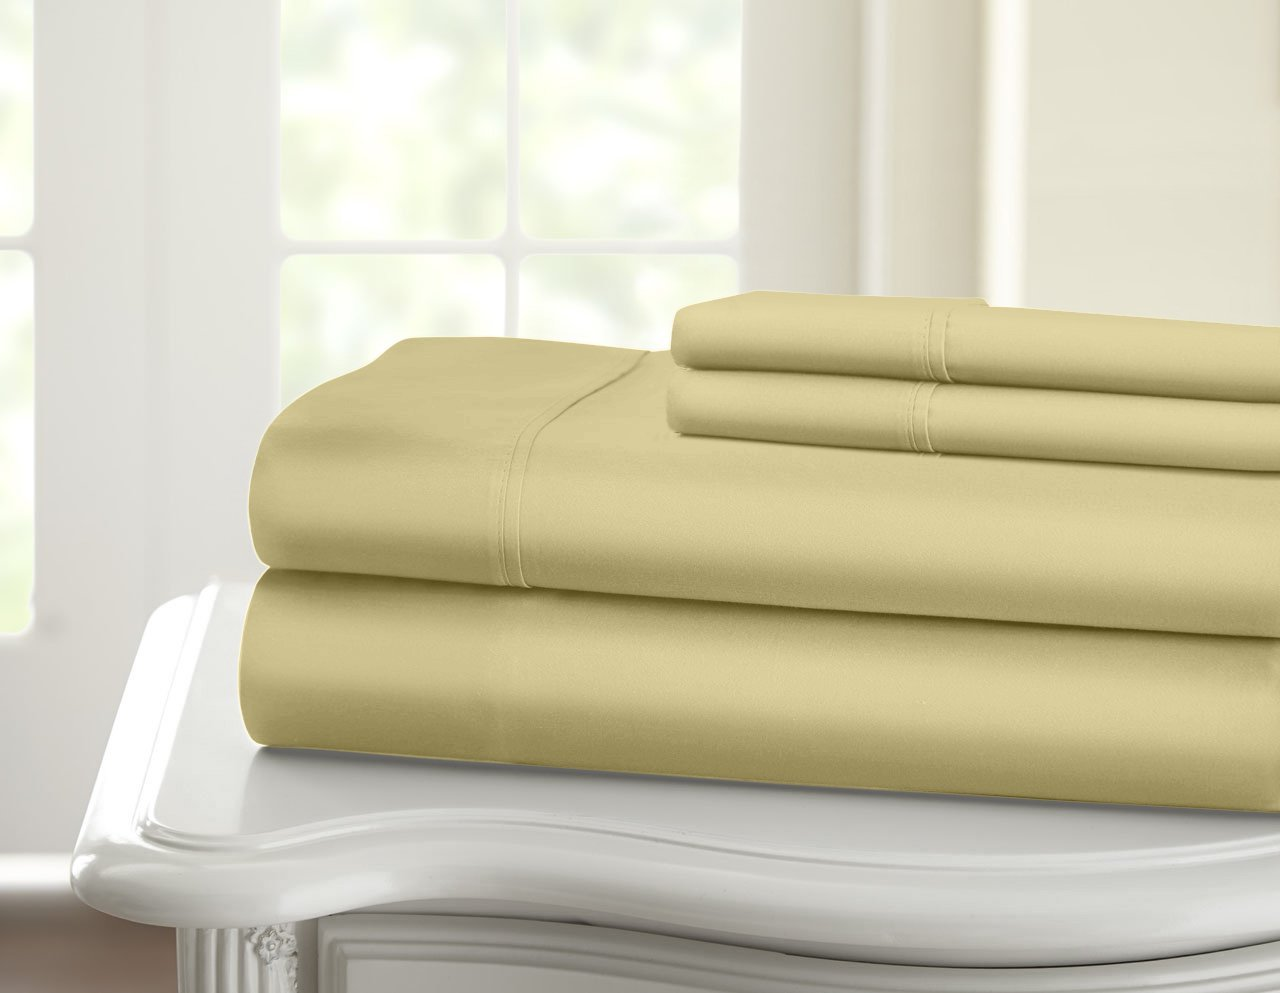 Chic Home 1000 Thread Count 4 Piece Luxury Sheet Set Queen Solid White SS0660-507-AN